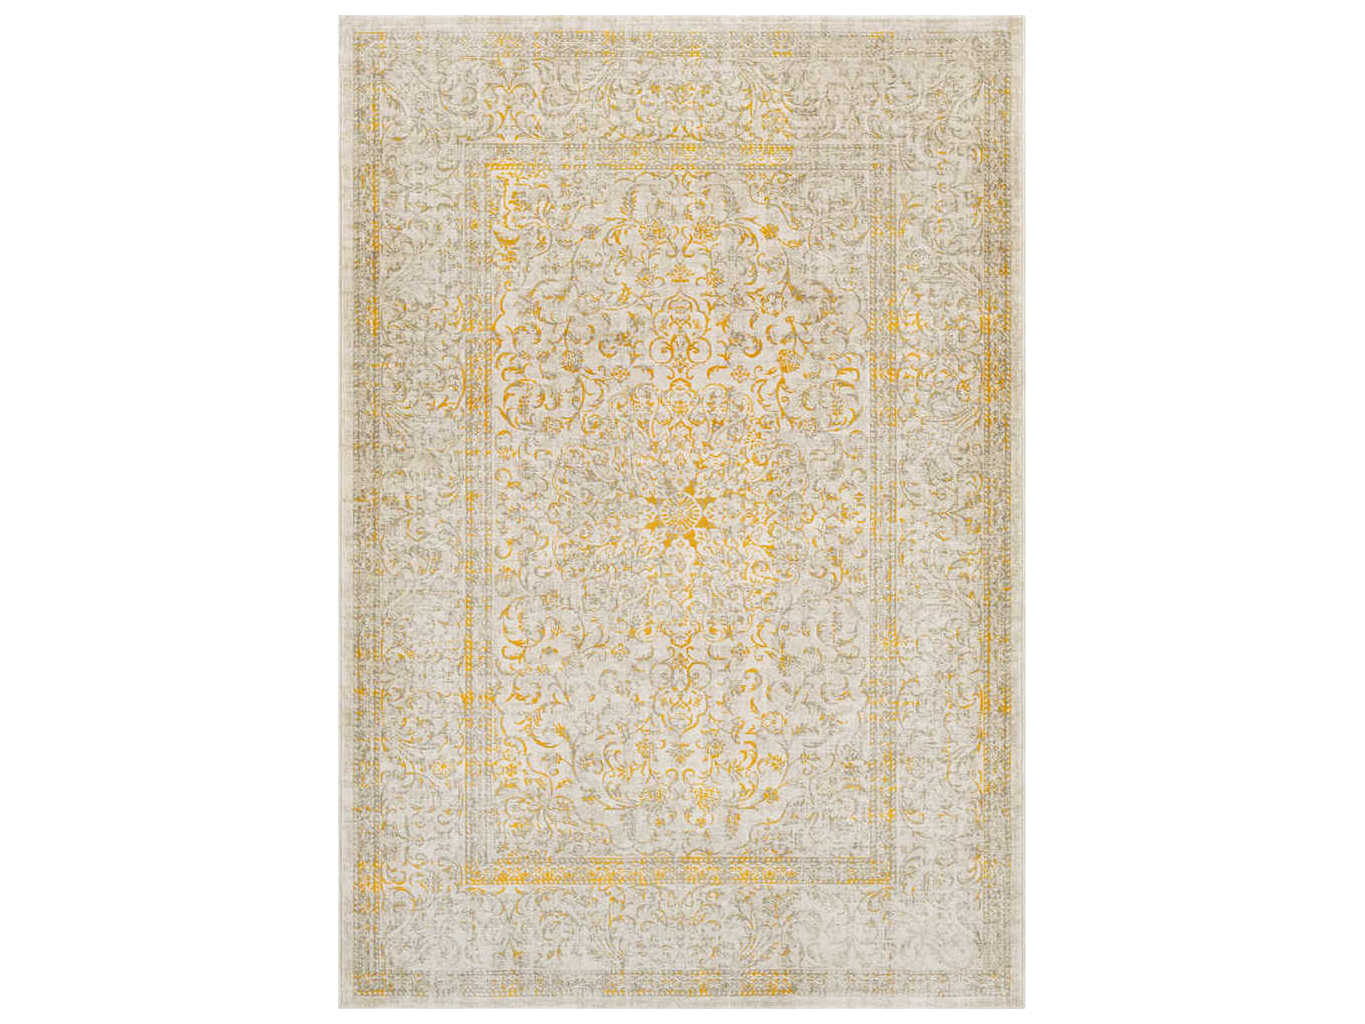 Surya Jax Mustard Dark Brown Taupe Light Gray Rectangular Area Rug